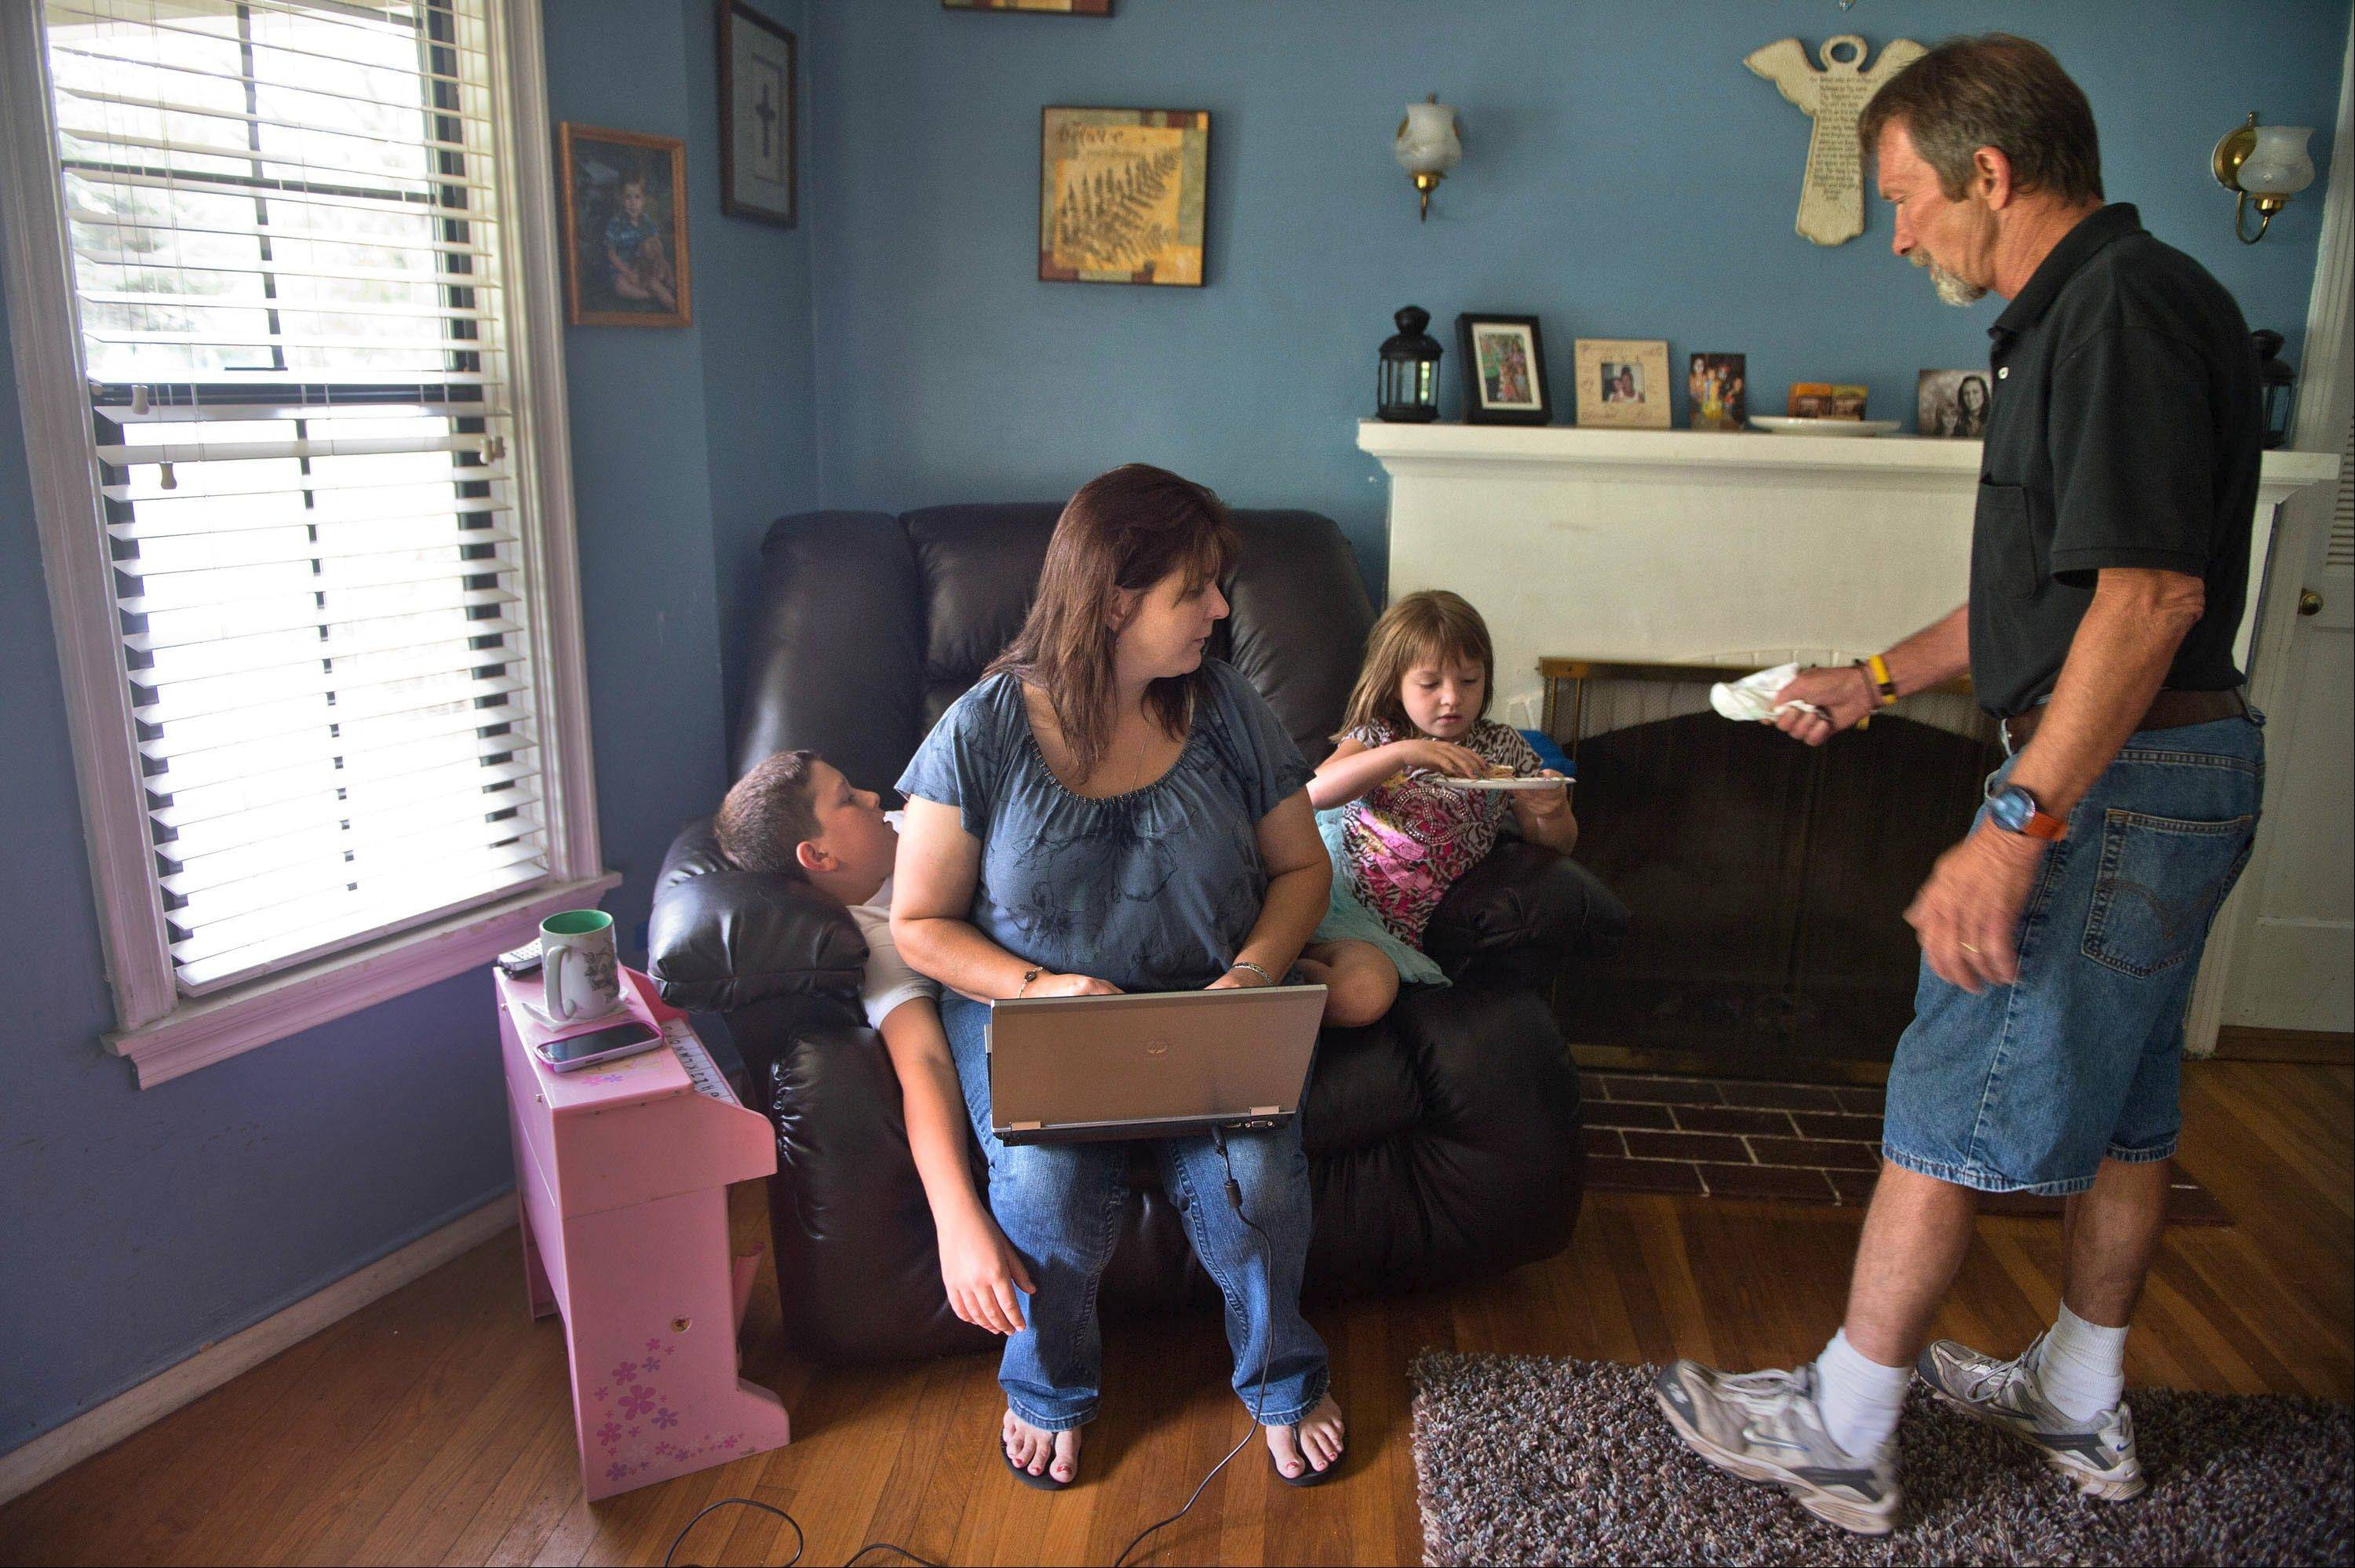 Claire Schooley, center, works from home as she helps husband David Schooley balance life between Alzheimer's disease and caring for their children, Nathaniel, 12, and Hannah, 6.